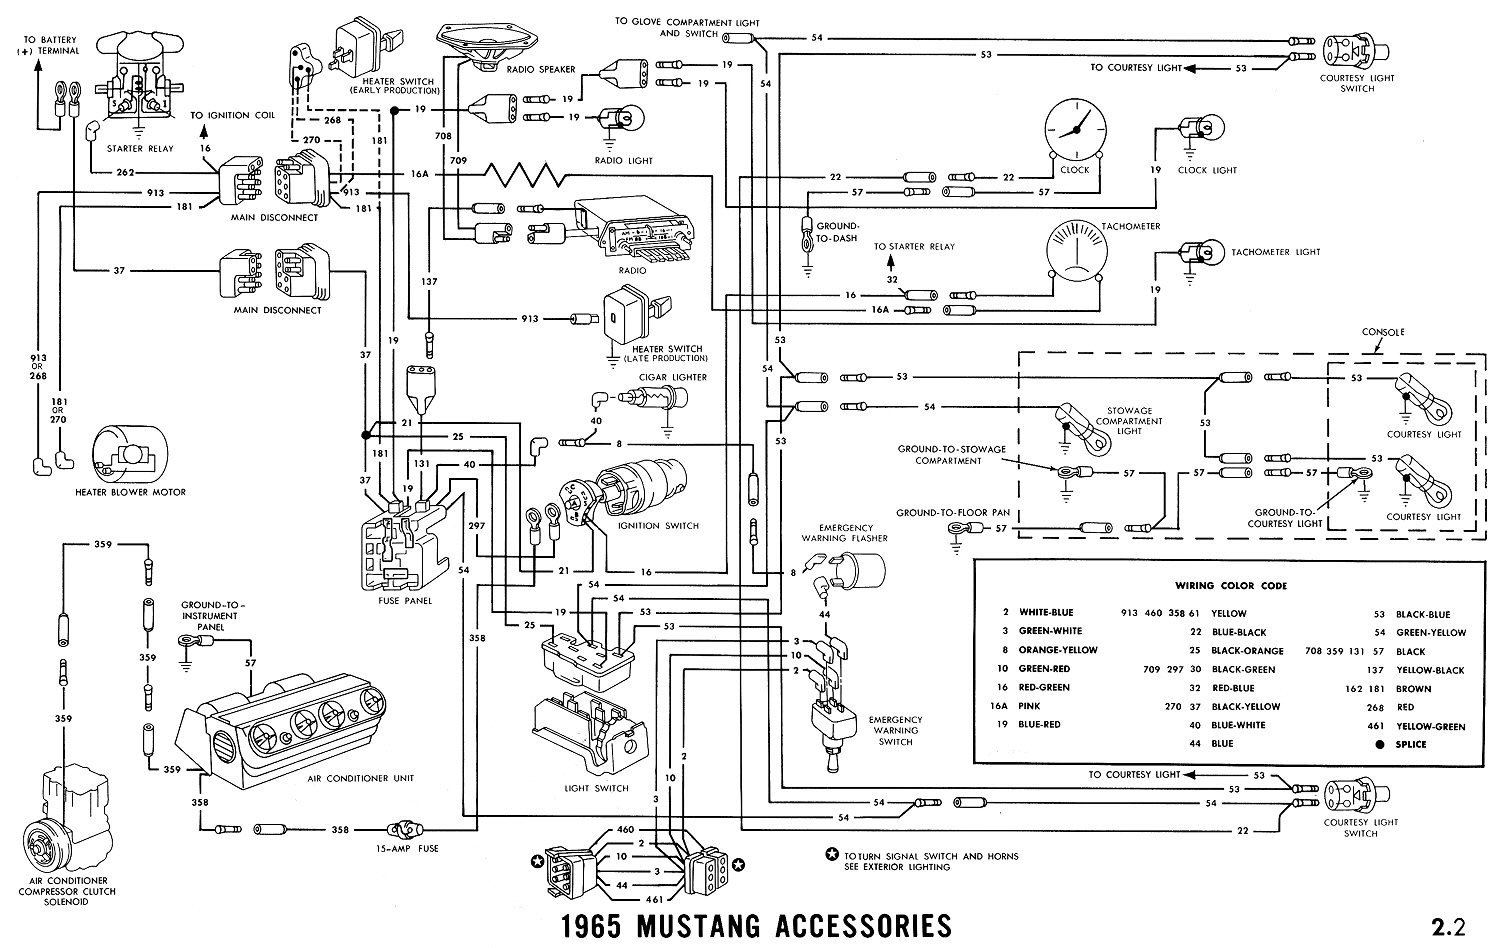 1973 ford mustang wiring diagram wiring diagram data schema 01 Mustang Wiring Diagram 1968 1969 1970 1971 1972 1973 mustang underhood wiring harnesses 1965 mustang color wiring diagram 1973 ford mustang wiring diagram